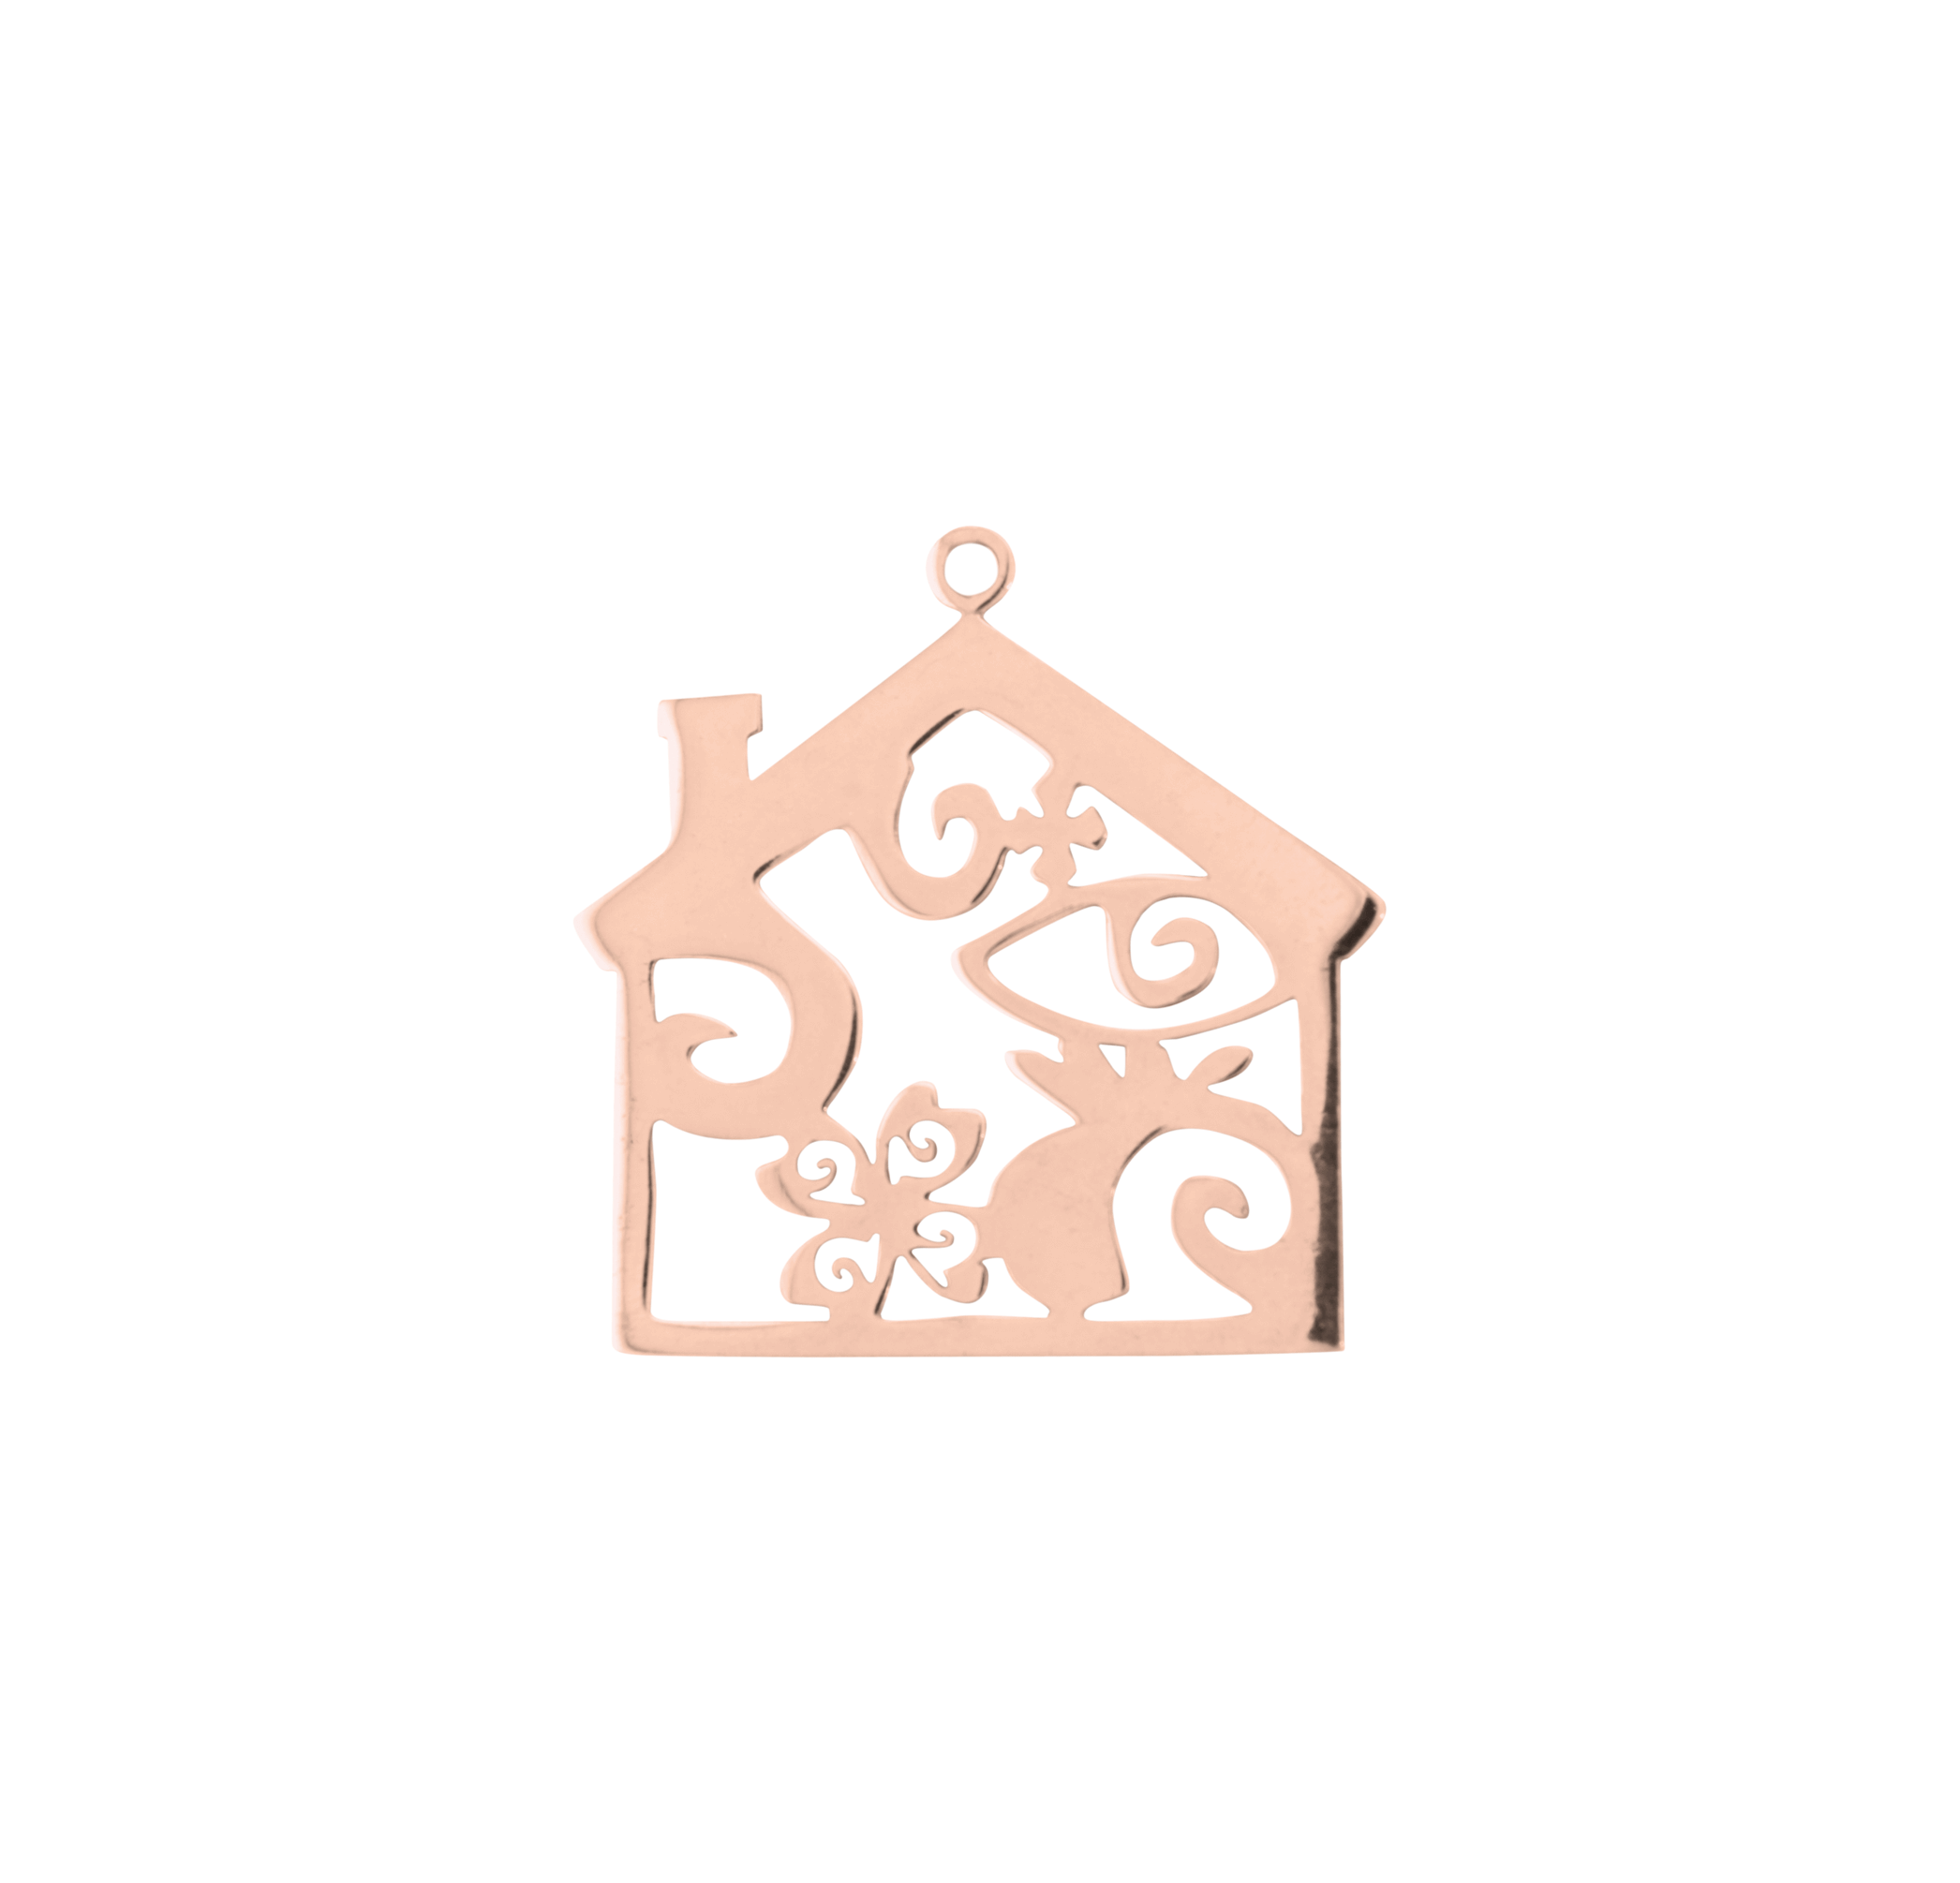 HOUSE PINK GOLD PLATED 45mm (BRASS)